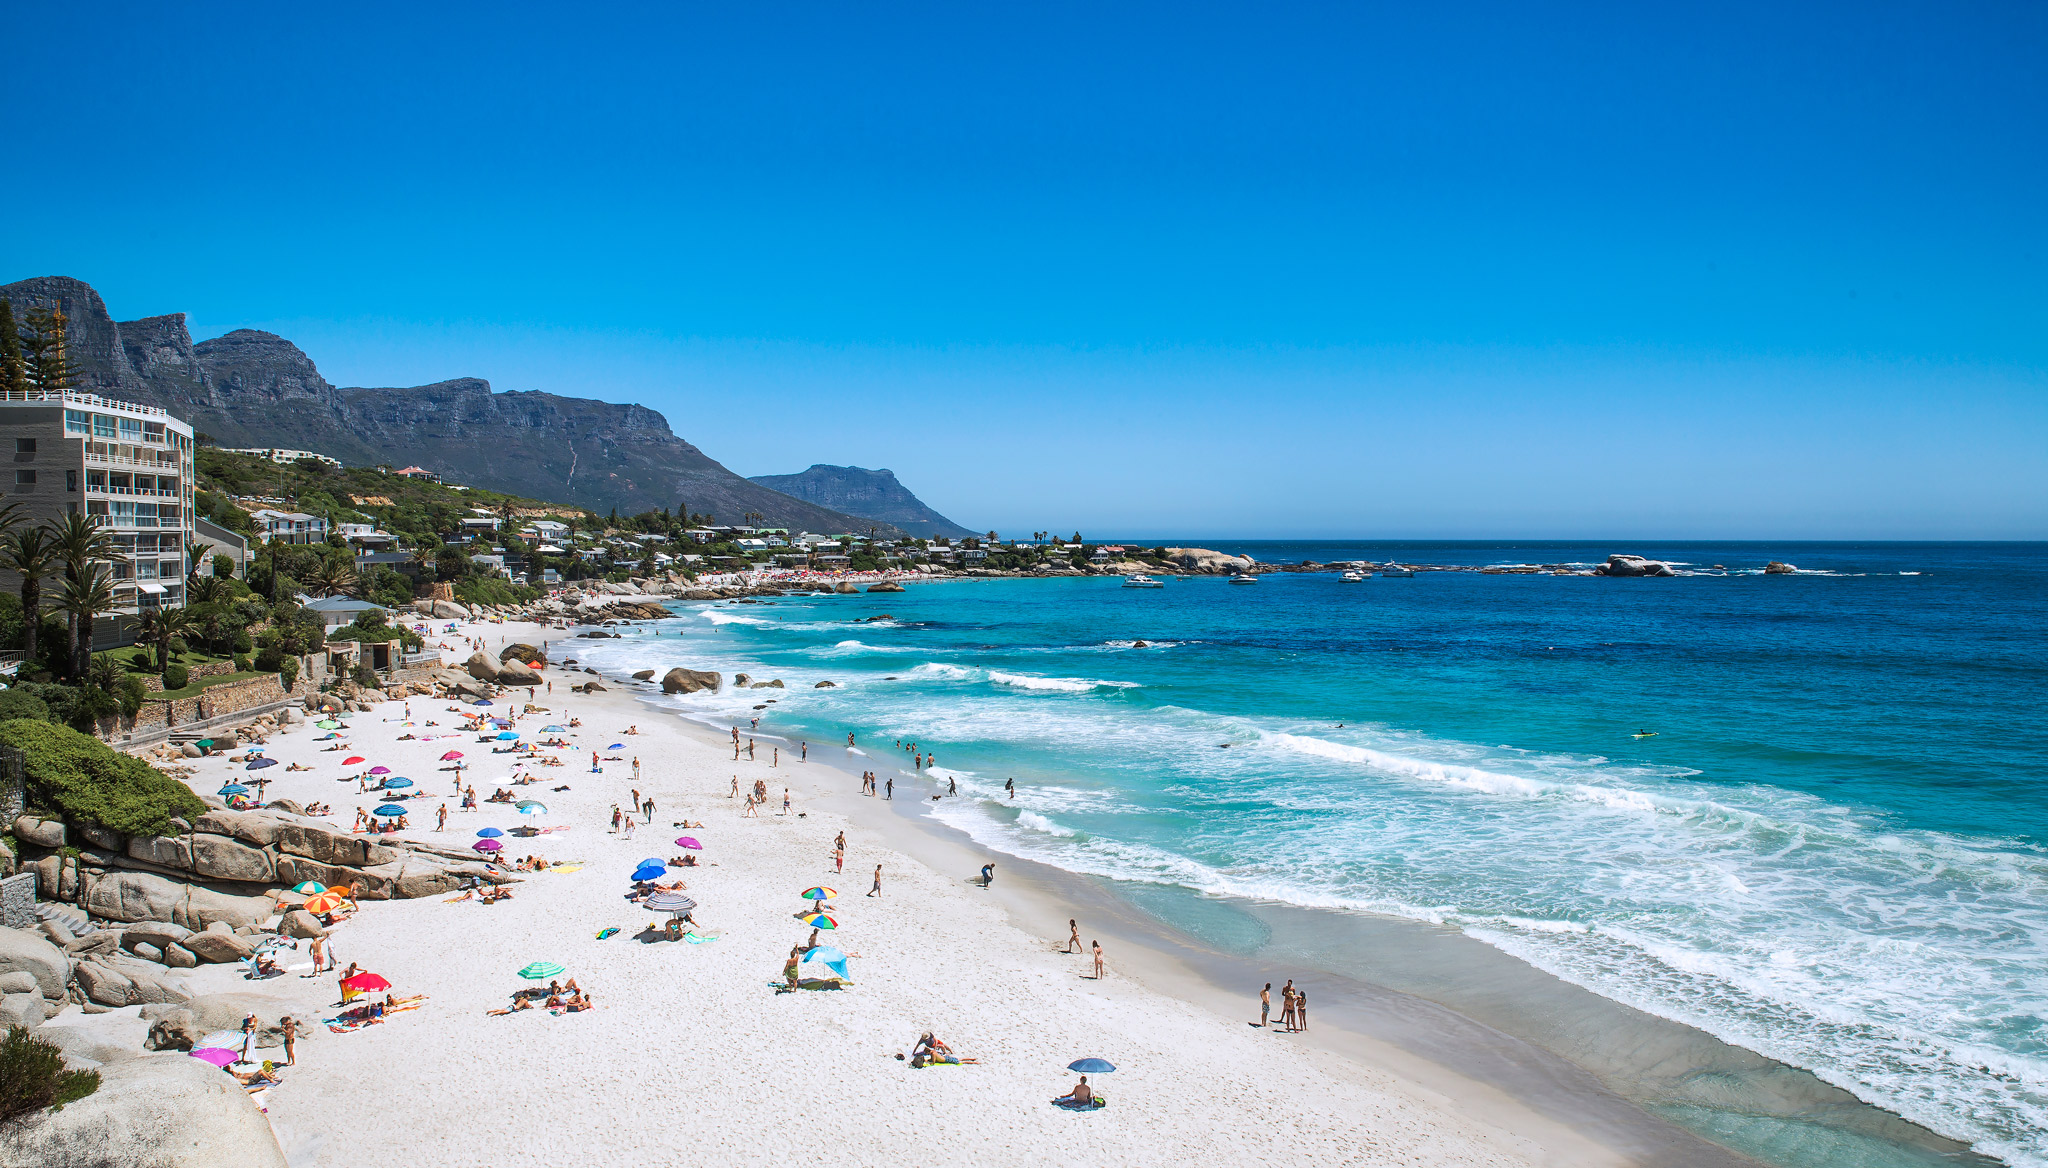 clifton-beach-cape-town-activities-in-cape-town